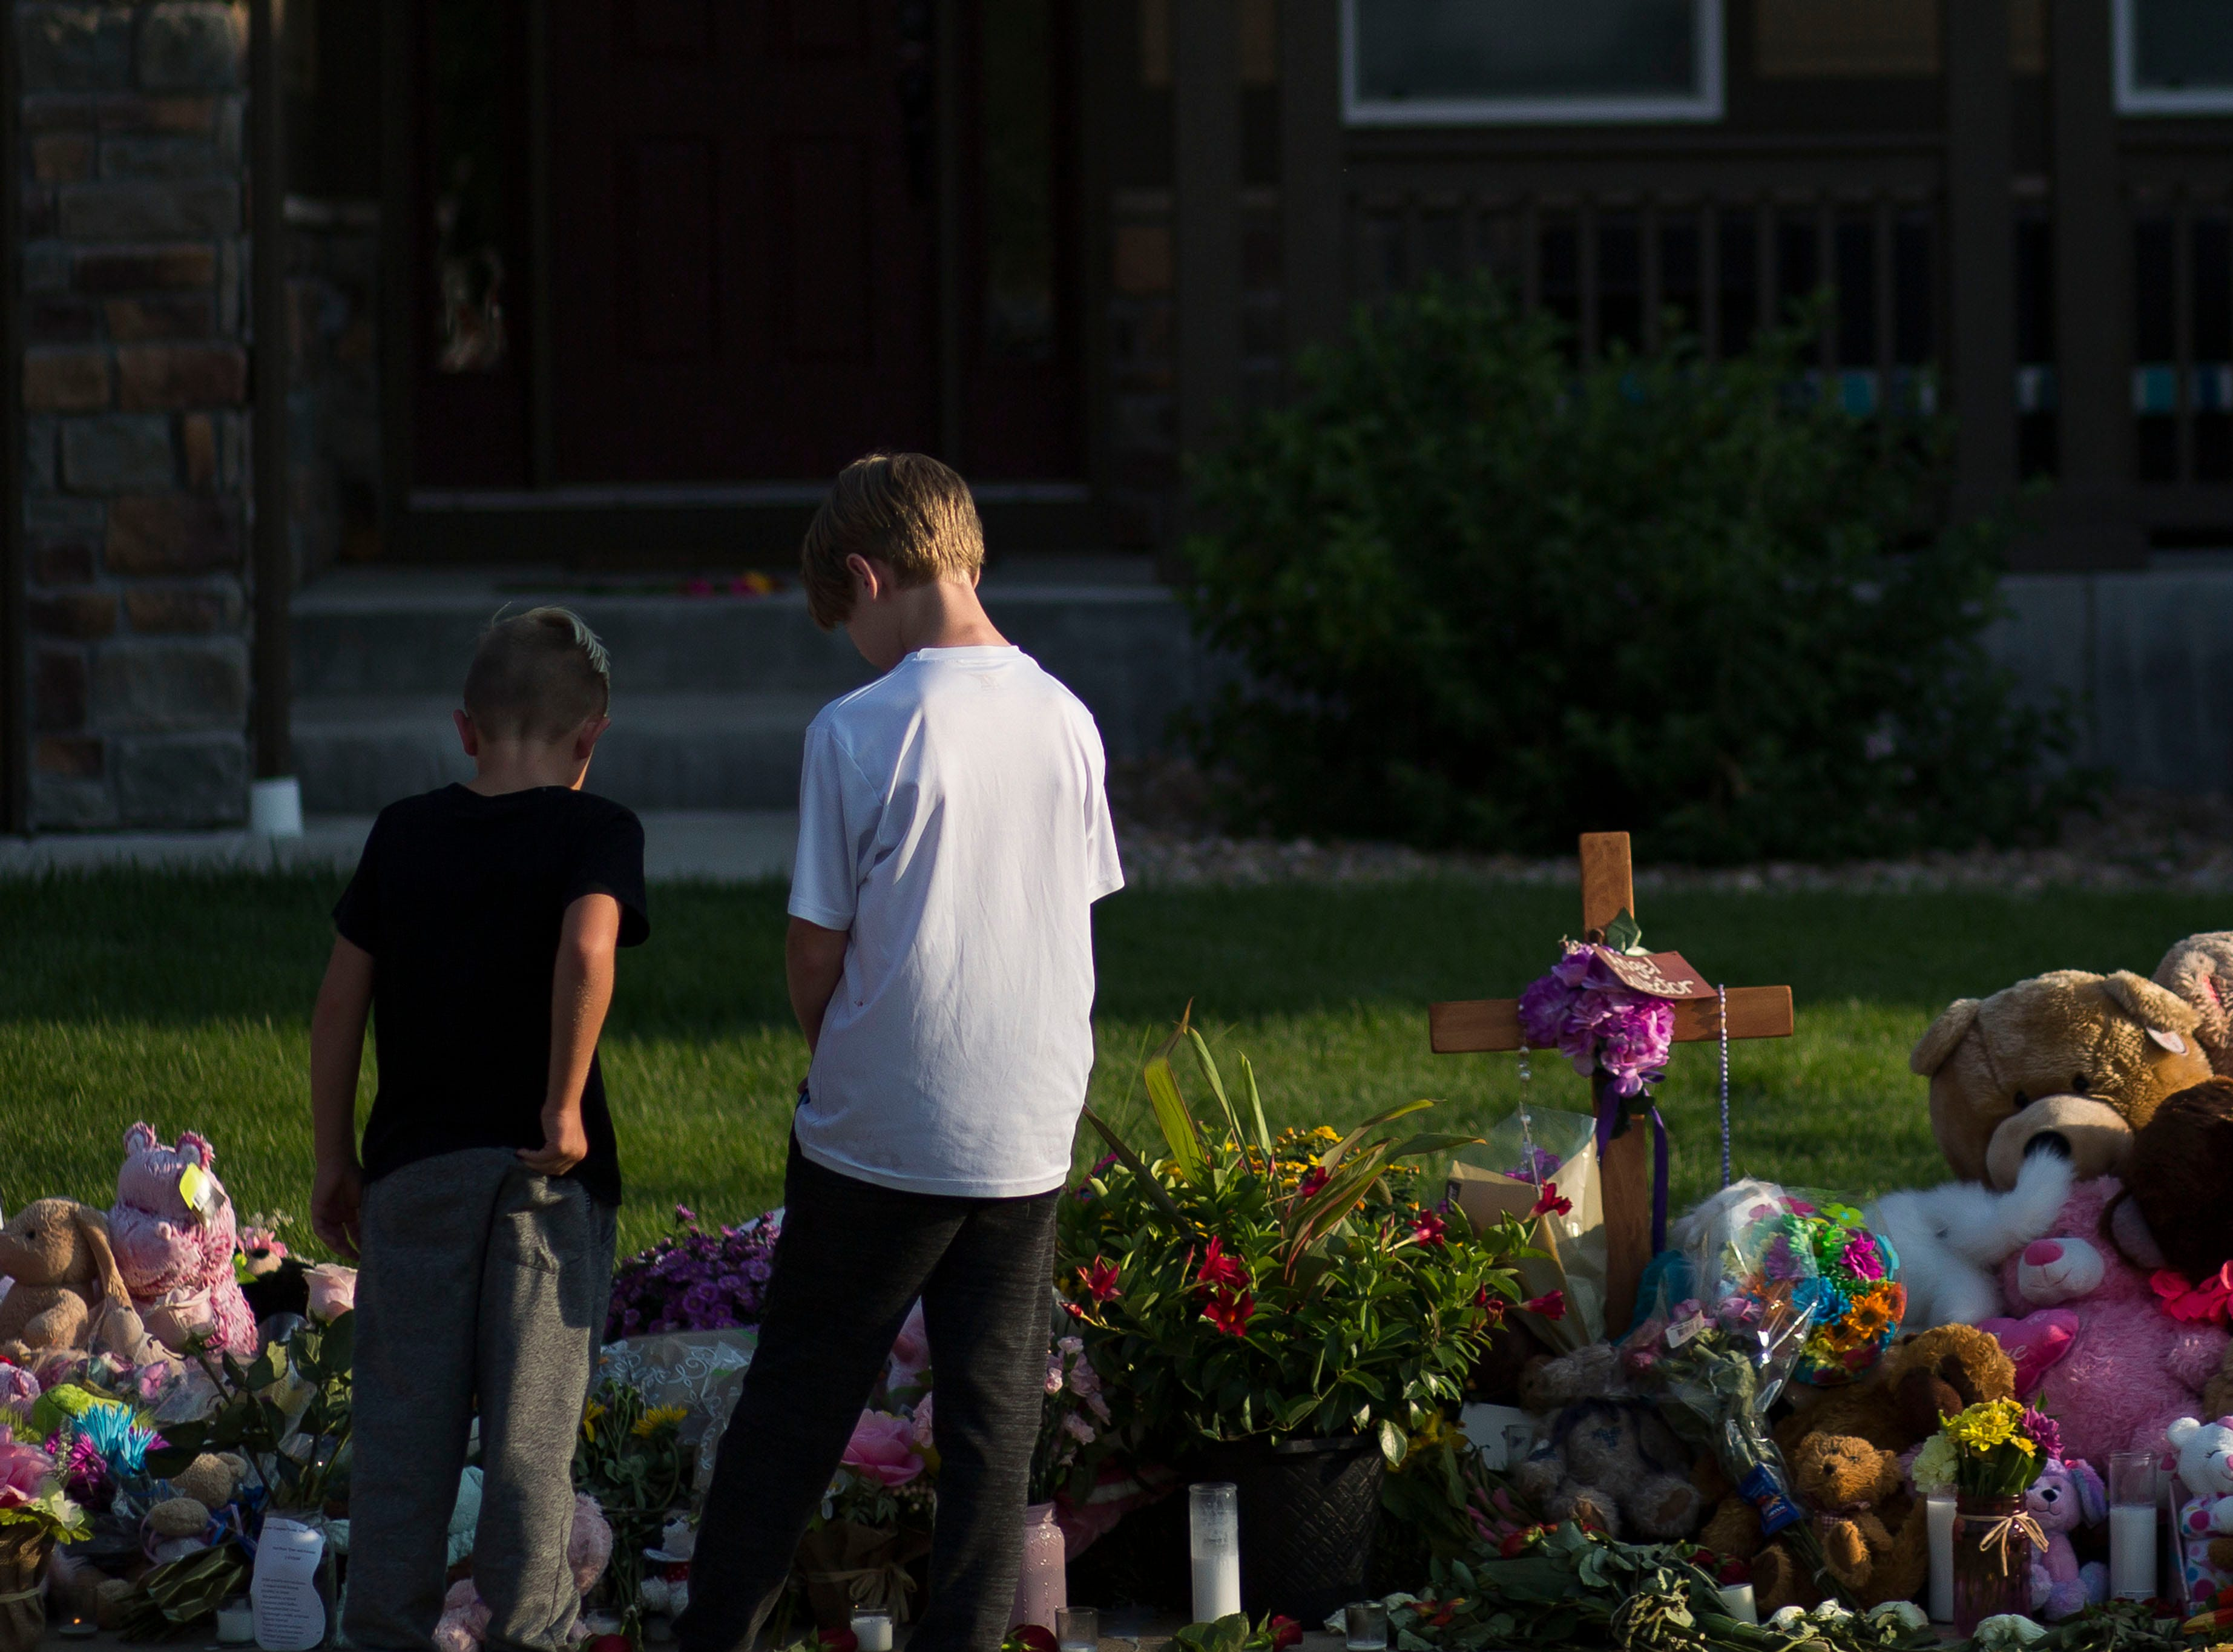 Two young boys look at a memorial for the slain Shanann Watts and her two daughters, Bella, 4, and Celeste, 3, in front of the Watts' family home on Friday, Aug. 17, 2018, in Frederick, Colo.